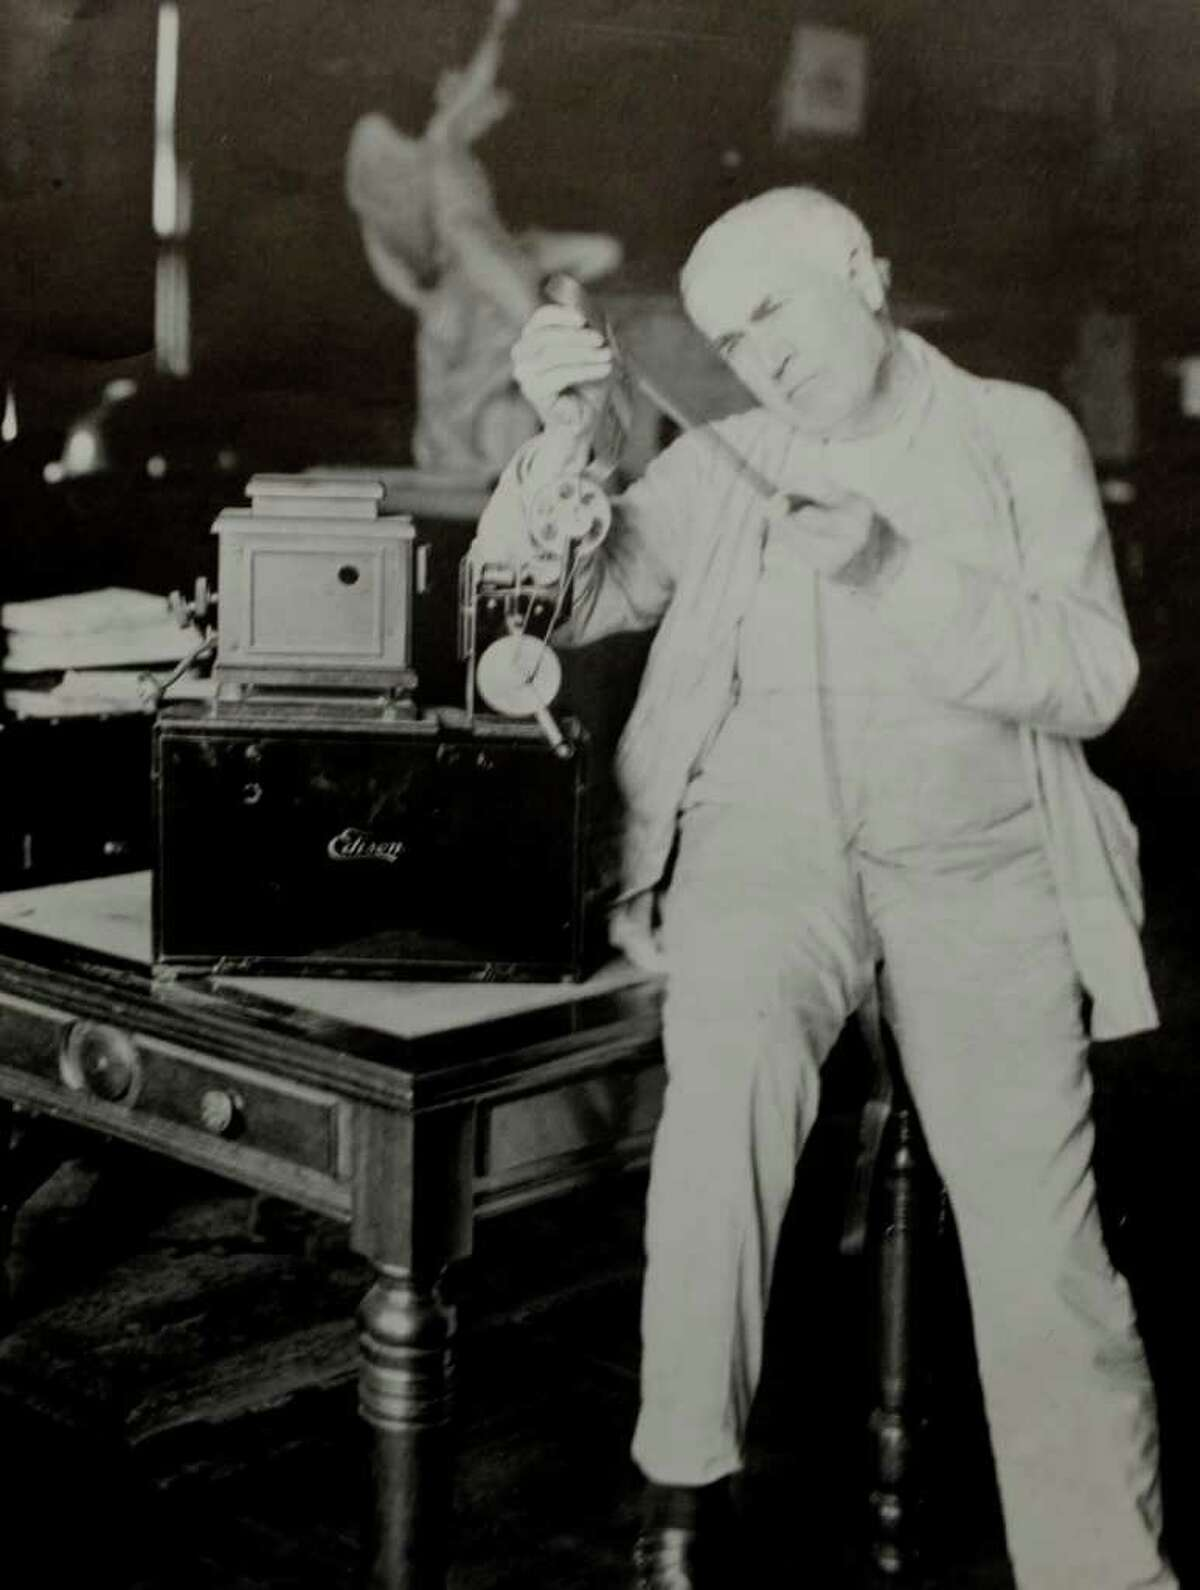 Click through the gallery to see photos related to General Electric in Schenectady through the years. Edison looks at an optical film from one of his film projectors from a handout image at the Schenectady Museum & Suits-Bueche Planetarium in Schenectady, New York, June 17, 2010.